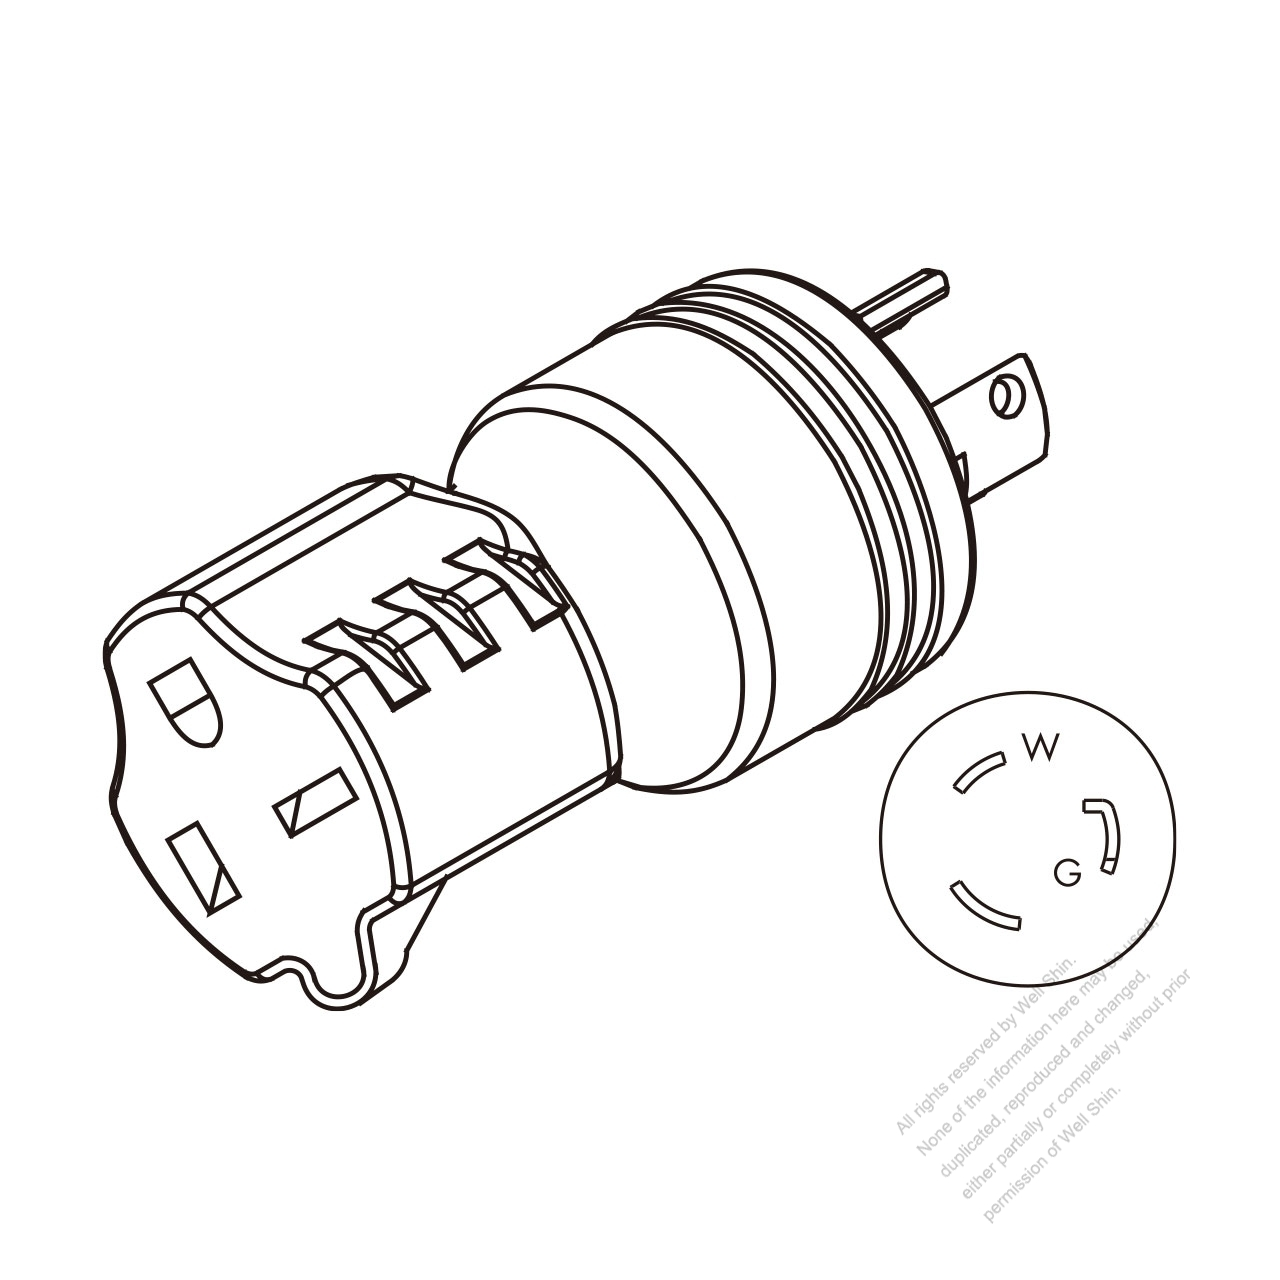 50   Rv Wiring Diagram Power furthermore All Power 3500 Watt Generator Wiring Diagram as well Escort Wiring Diagram Pdf 2 in addition L6 30r Receptacle Wiring Diagram moreover 480v To 240v Plug Ground Transformer Wiring Diagram. on l14 30p